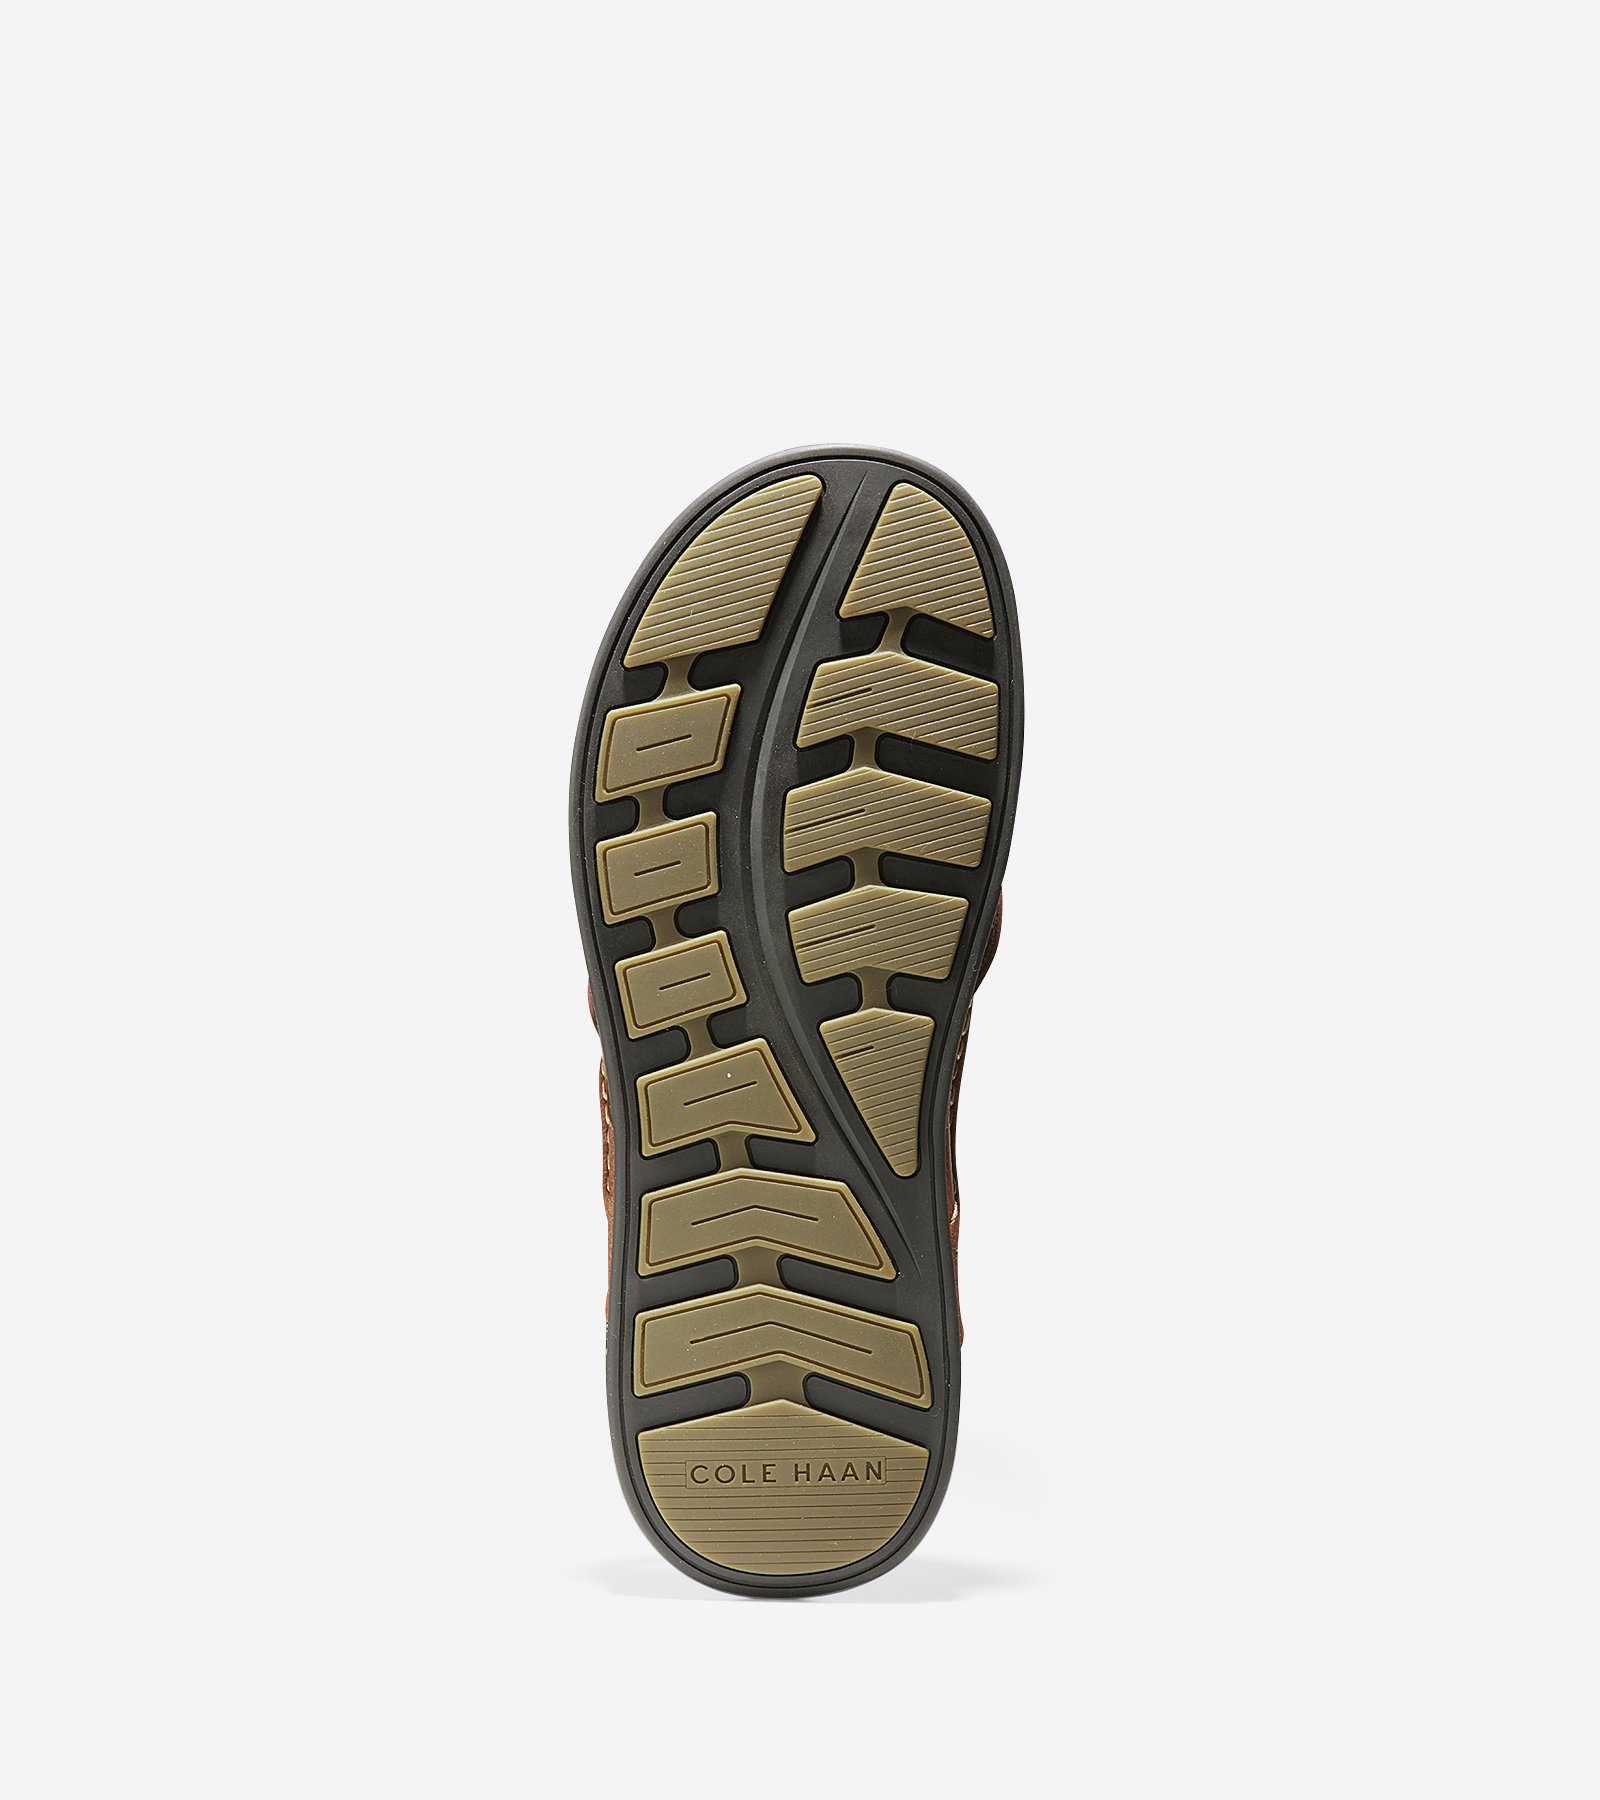 38f1037e15 Men's Brady Thong Sandal in British Tan | Cole Haan US